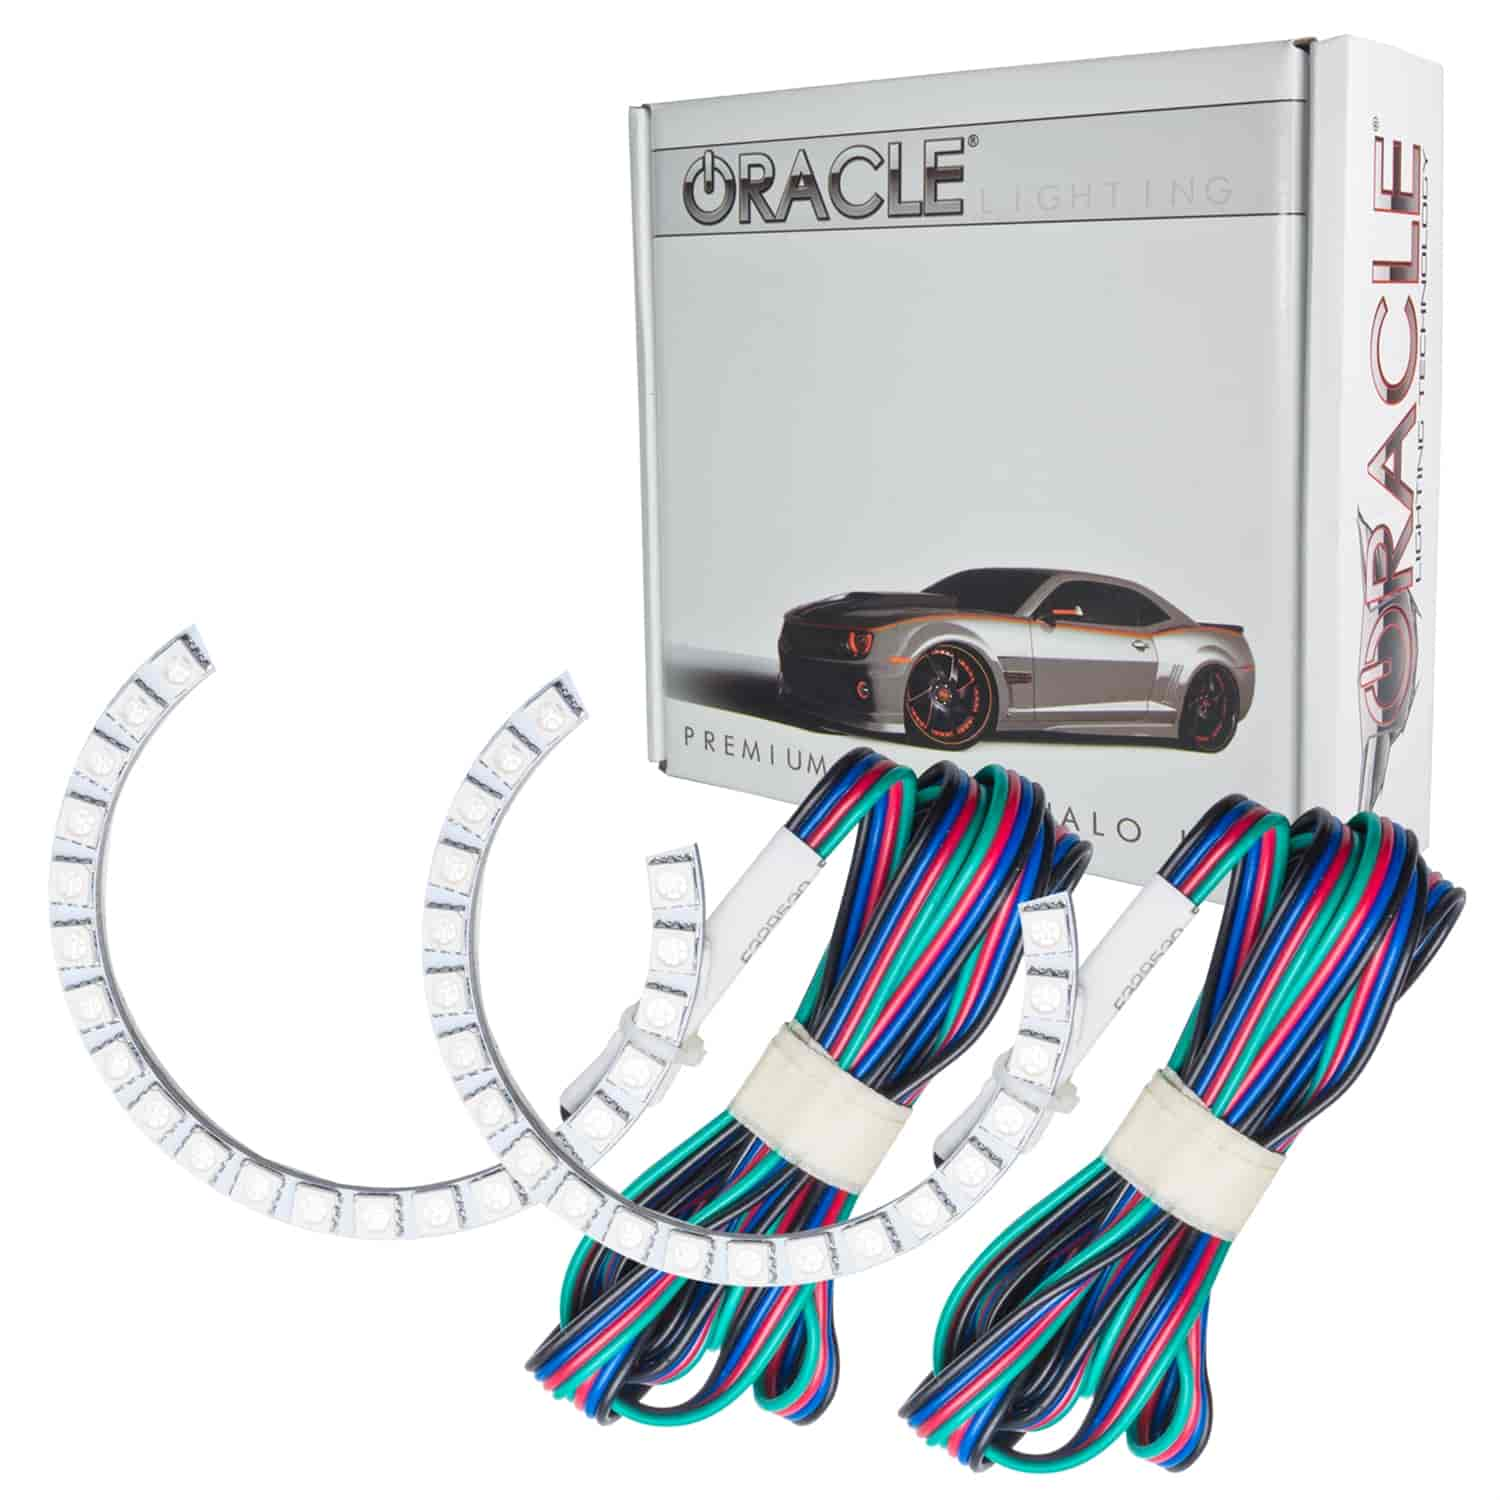 ORACLE Lighting 2351-330: Audi A5 2007 2013 LED ColorSHIFT